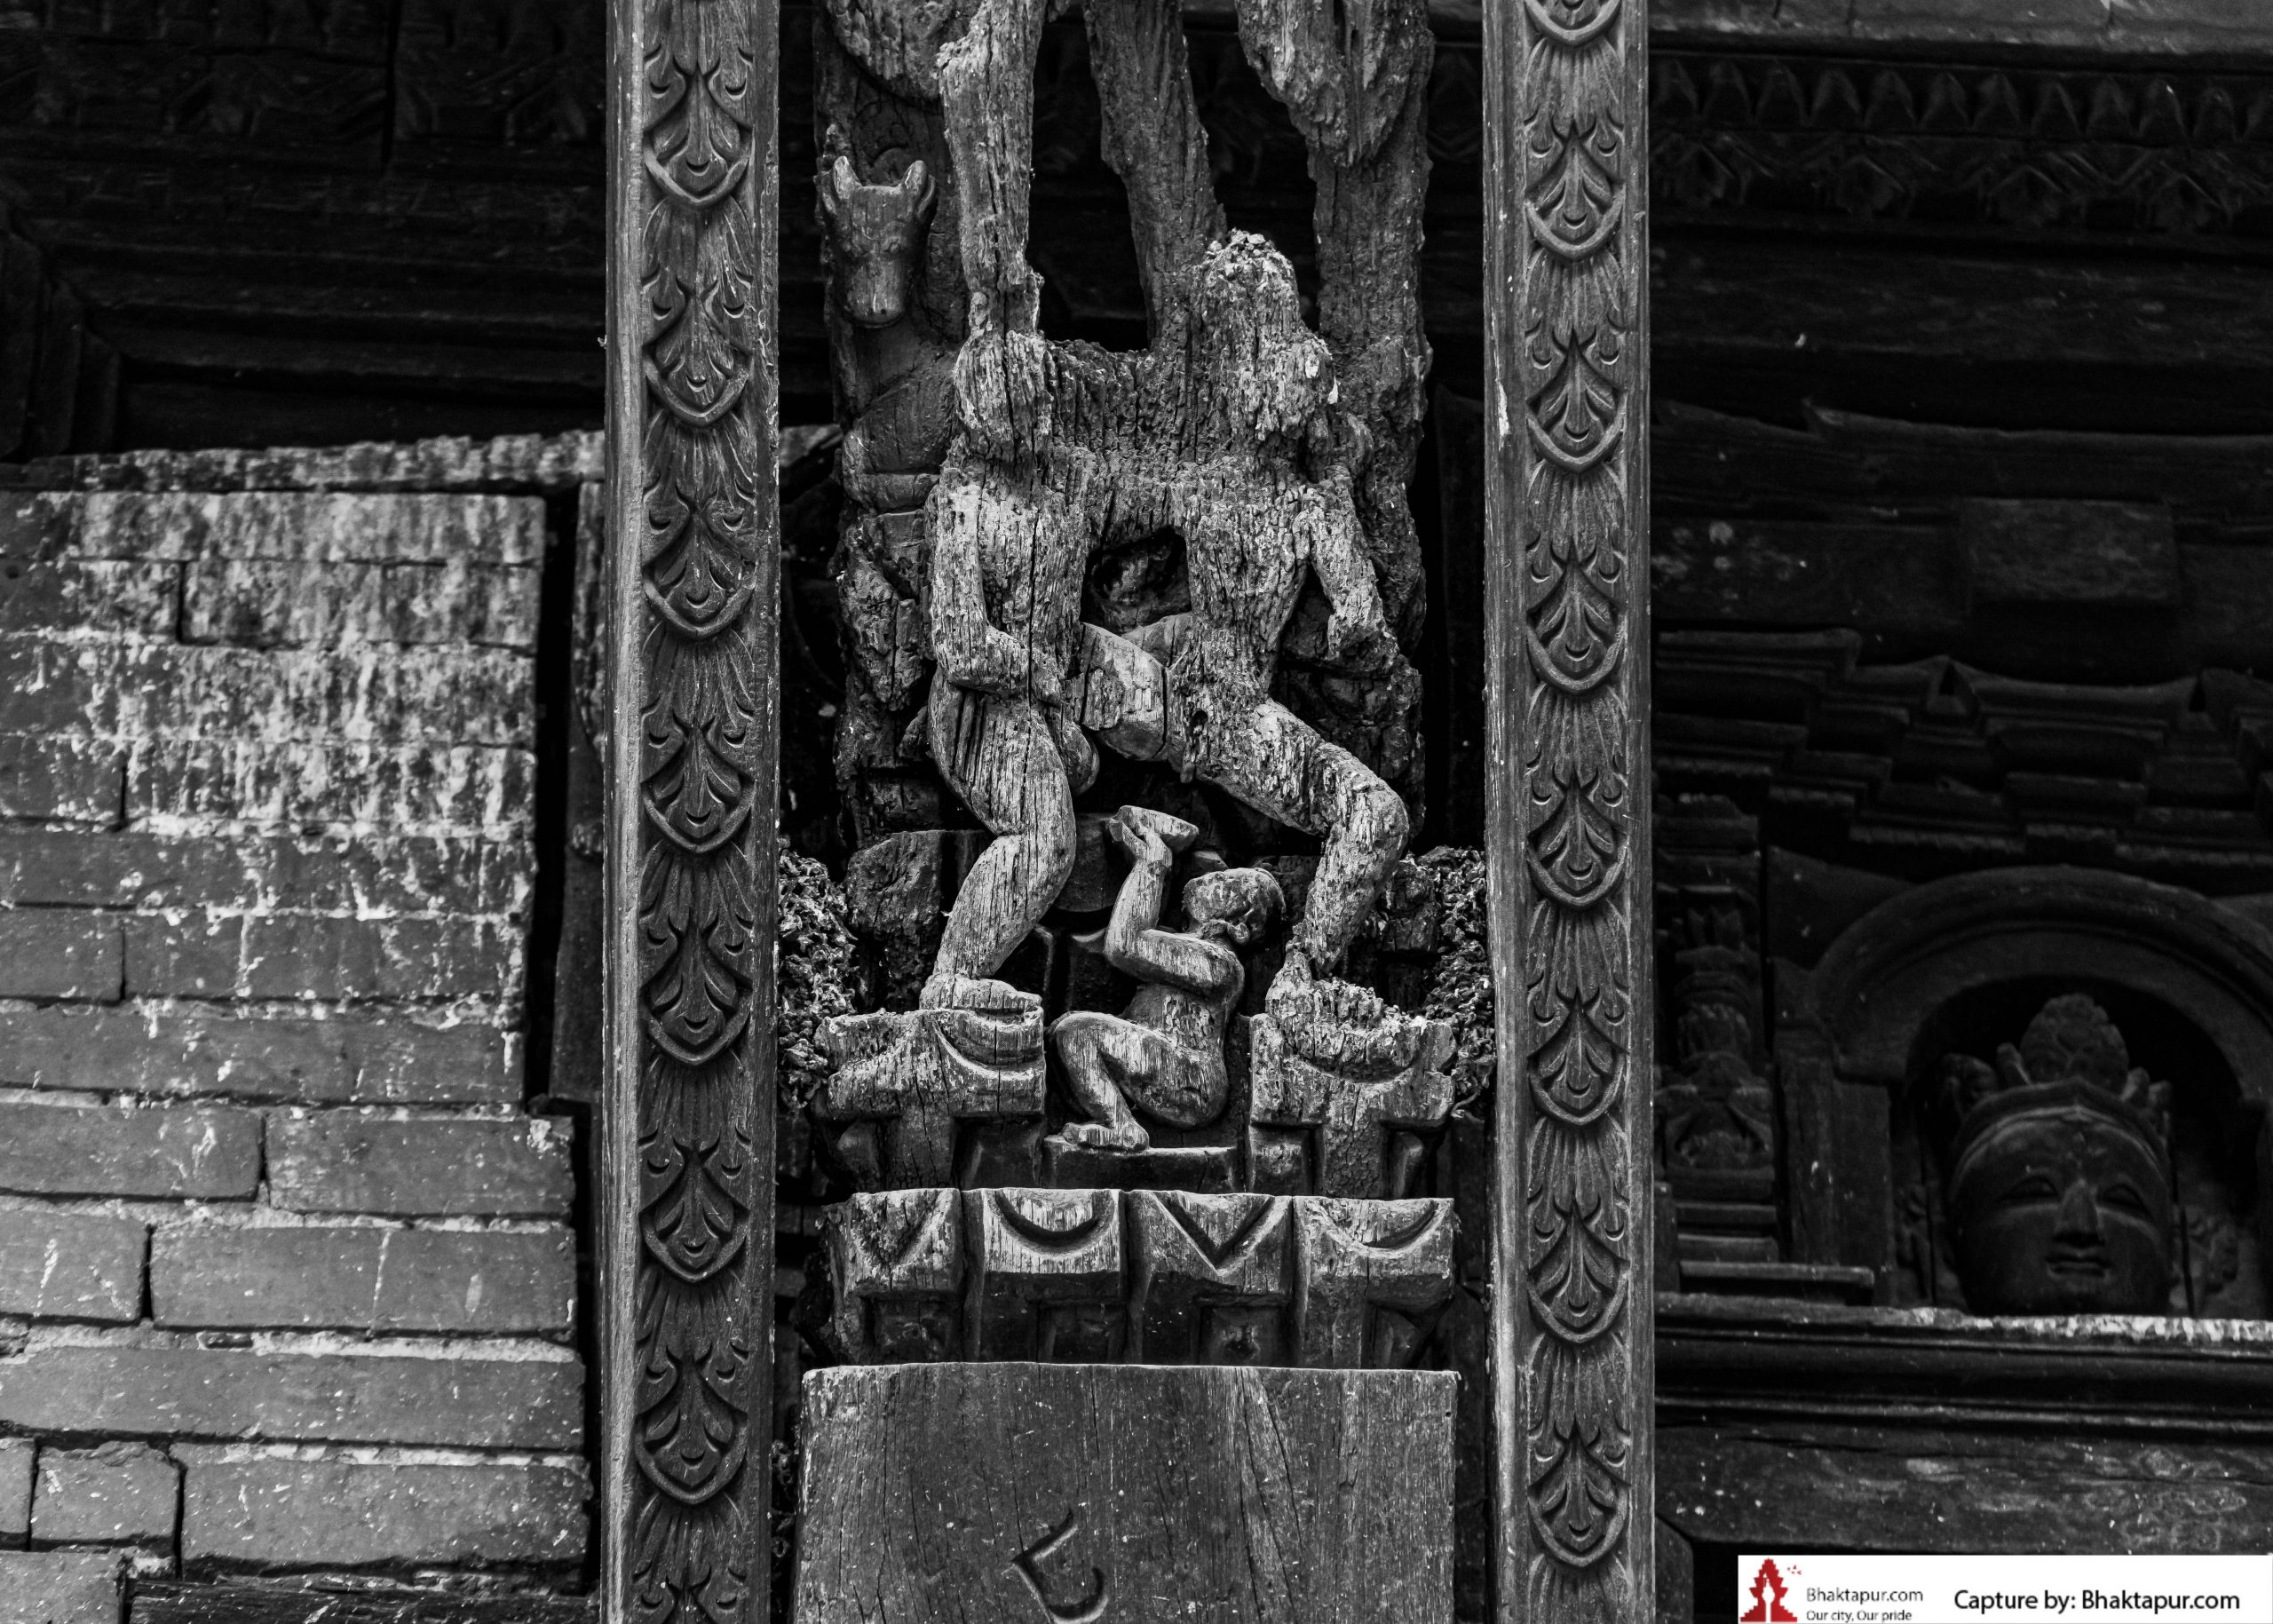 https://www.bhaktapur.com/wp-content/uploads/2021/08/erotic-carving-91-of-137-scaled.jpg